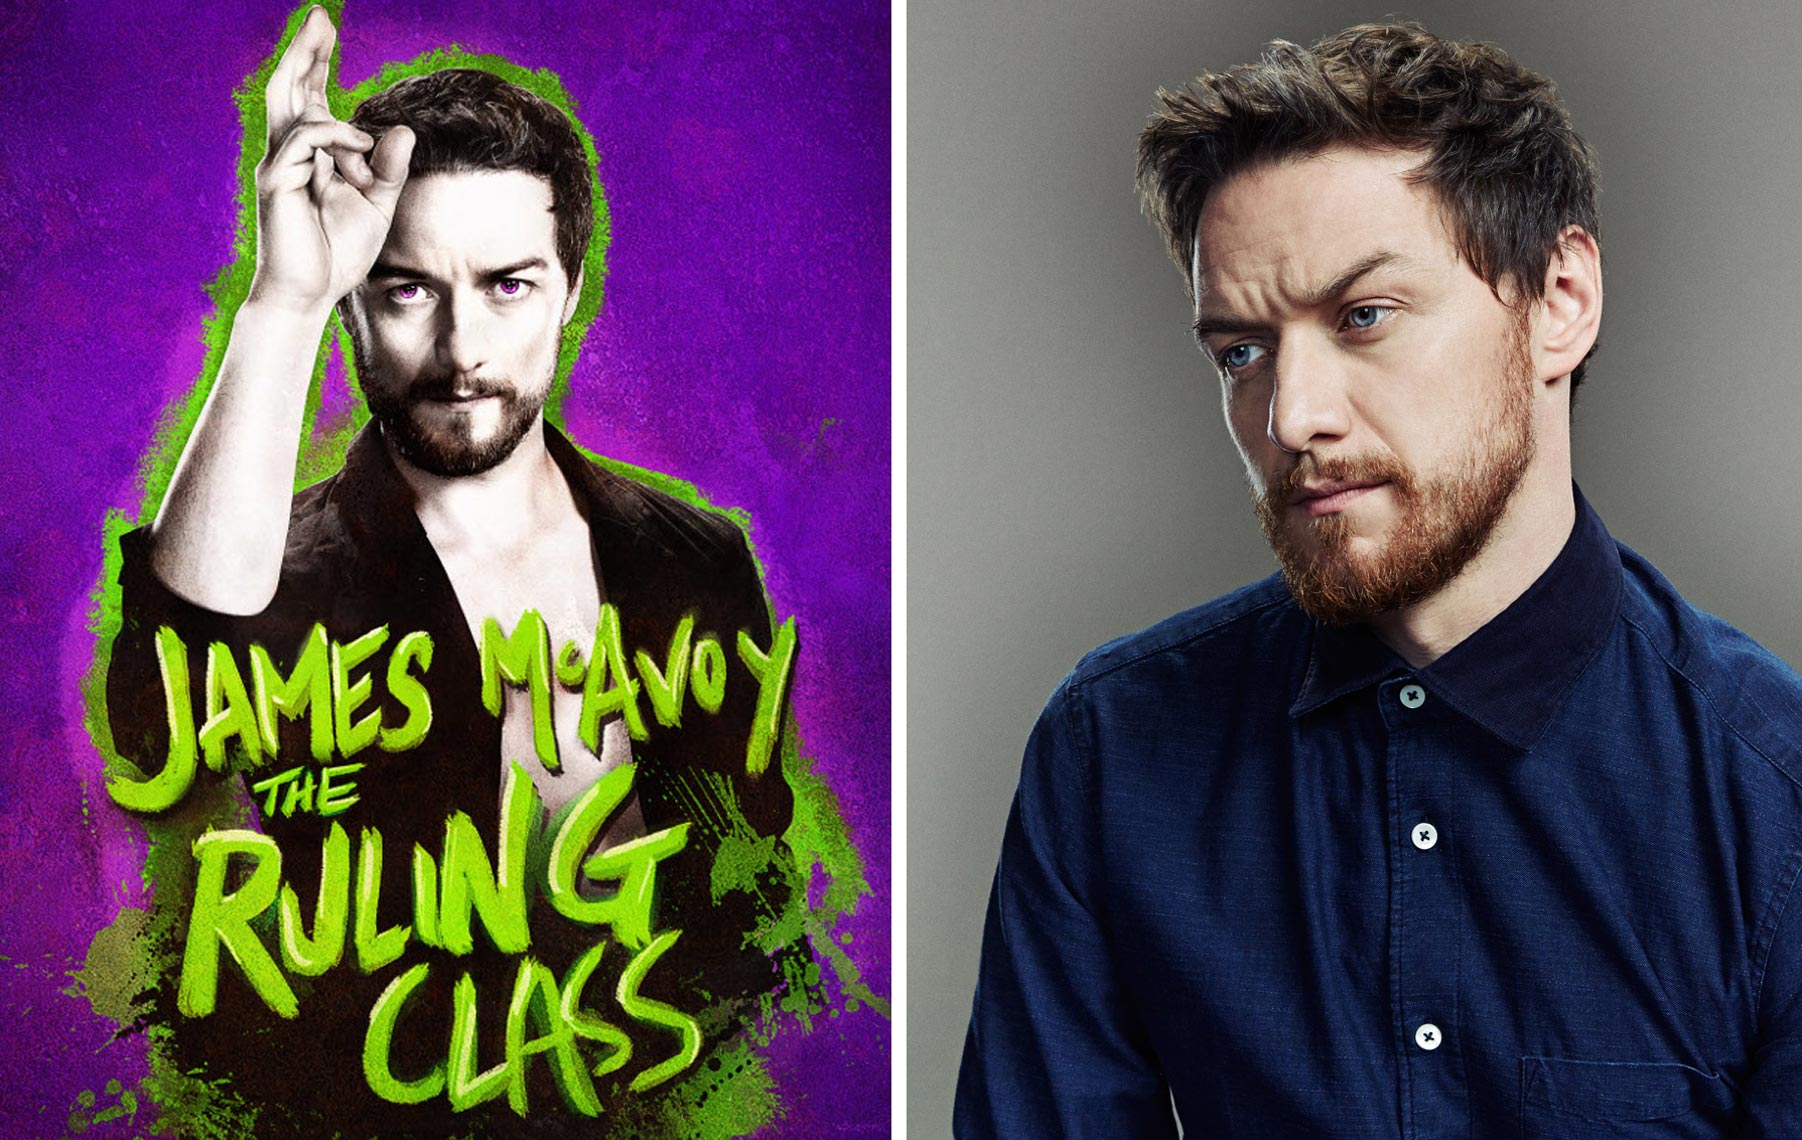 James McAvoy Trafalgar Theatre Ruling Class